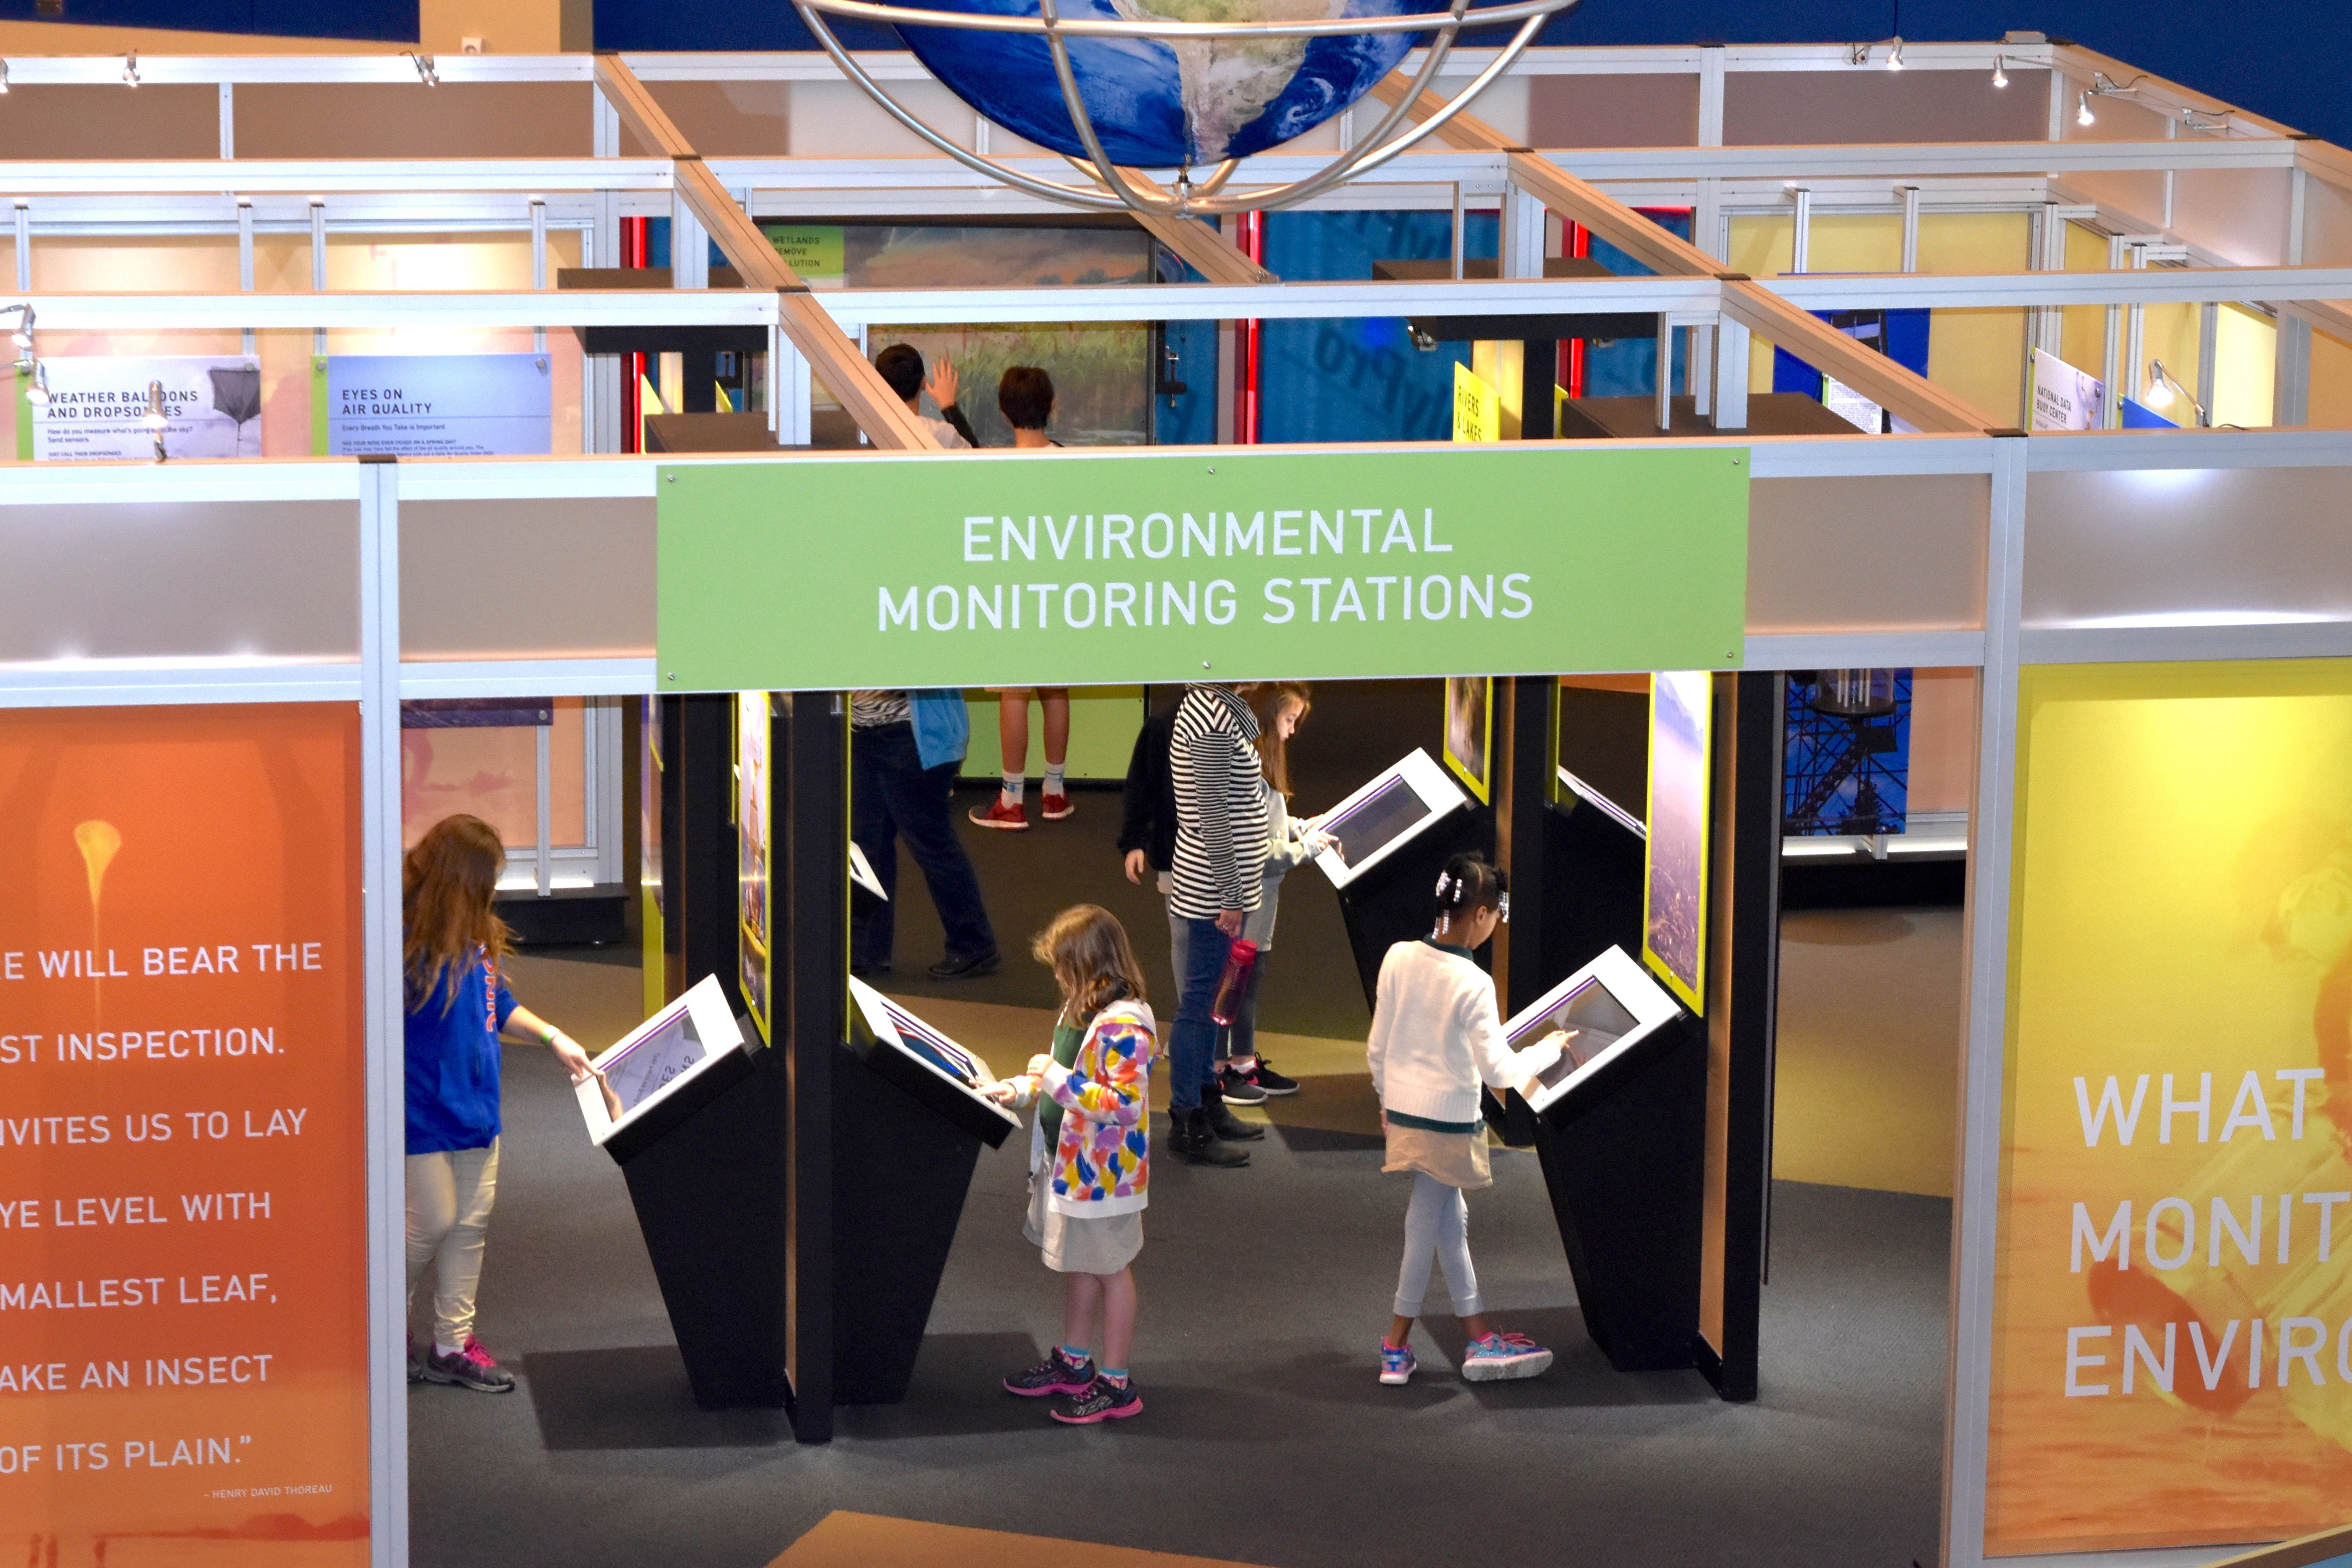 Children learning about environmental monitoring at a new exhibit at the Infinity Science Center.